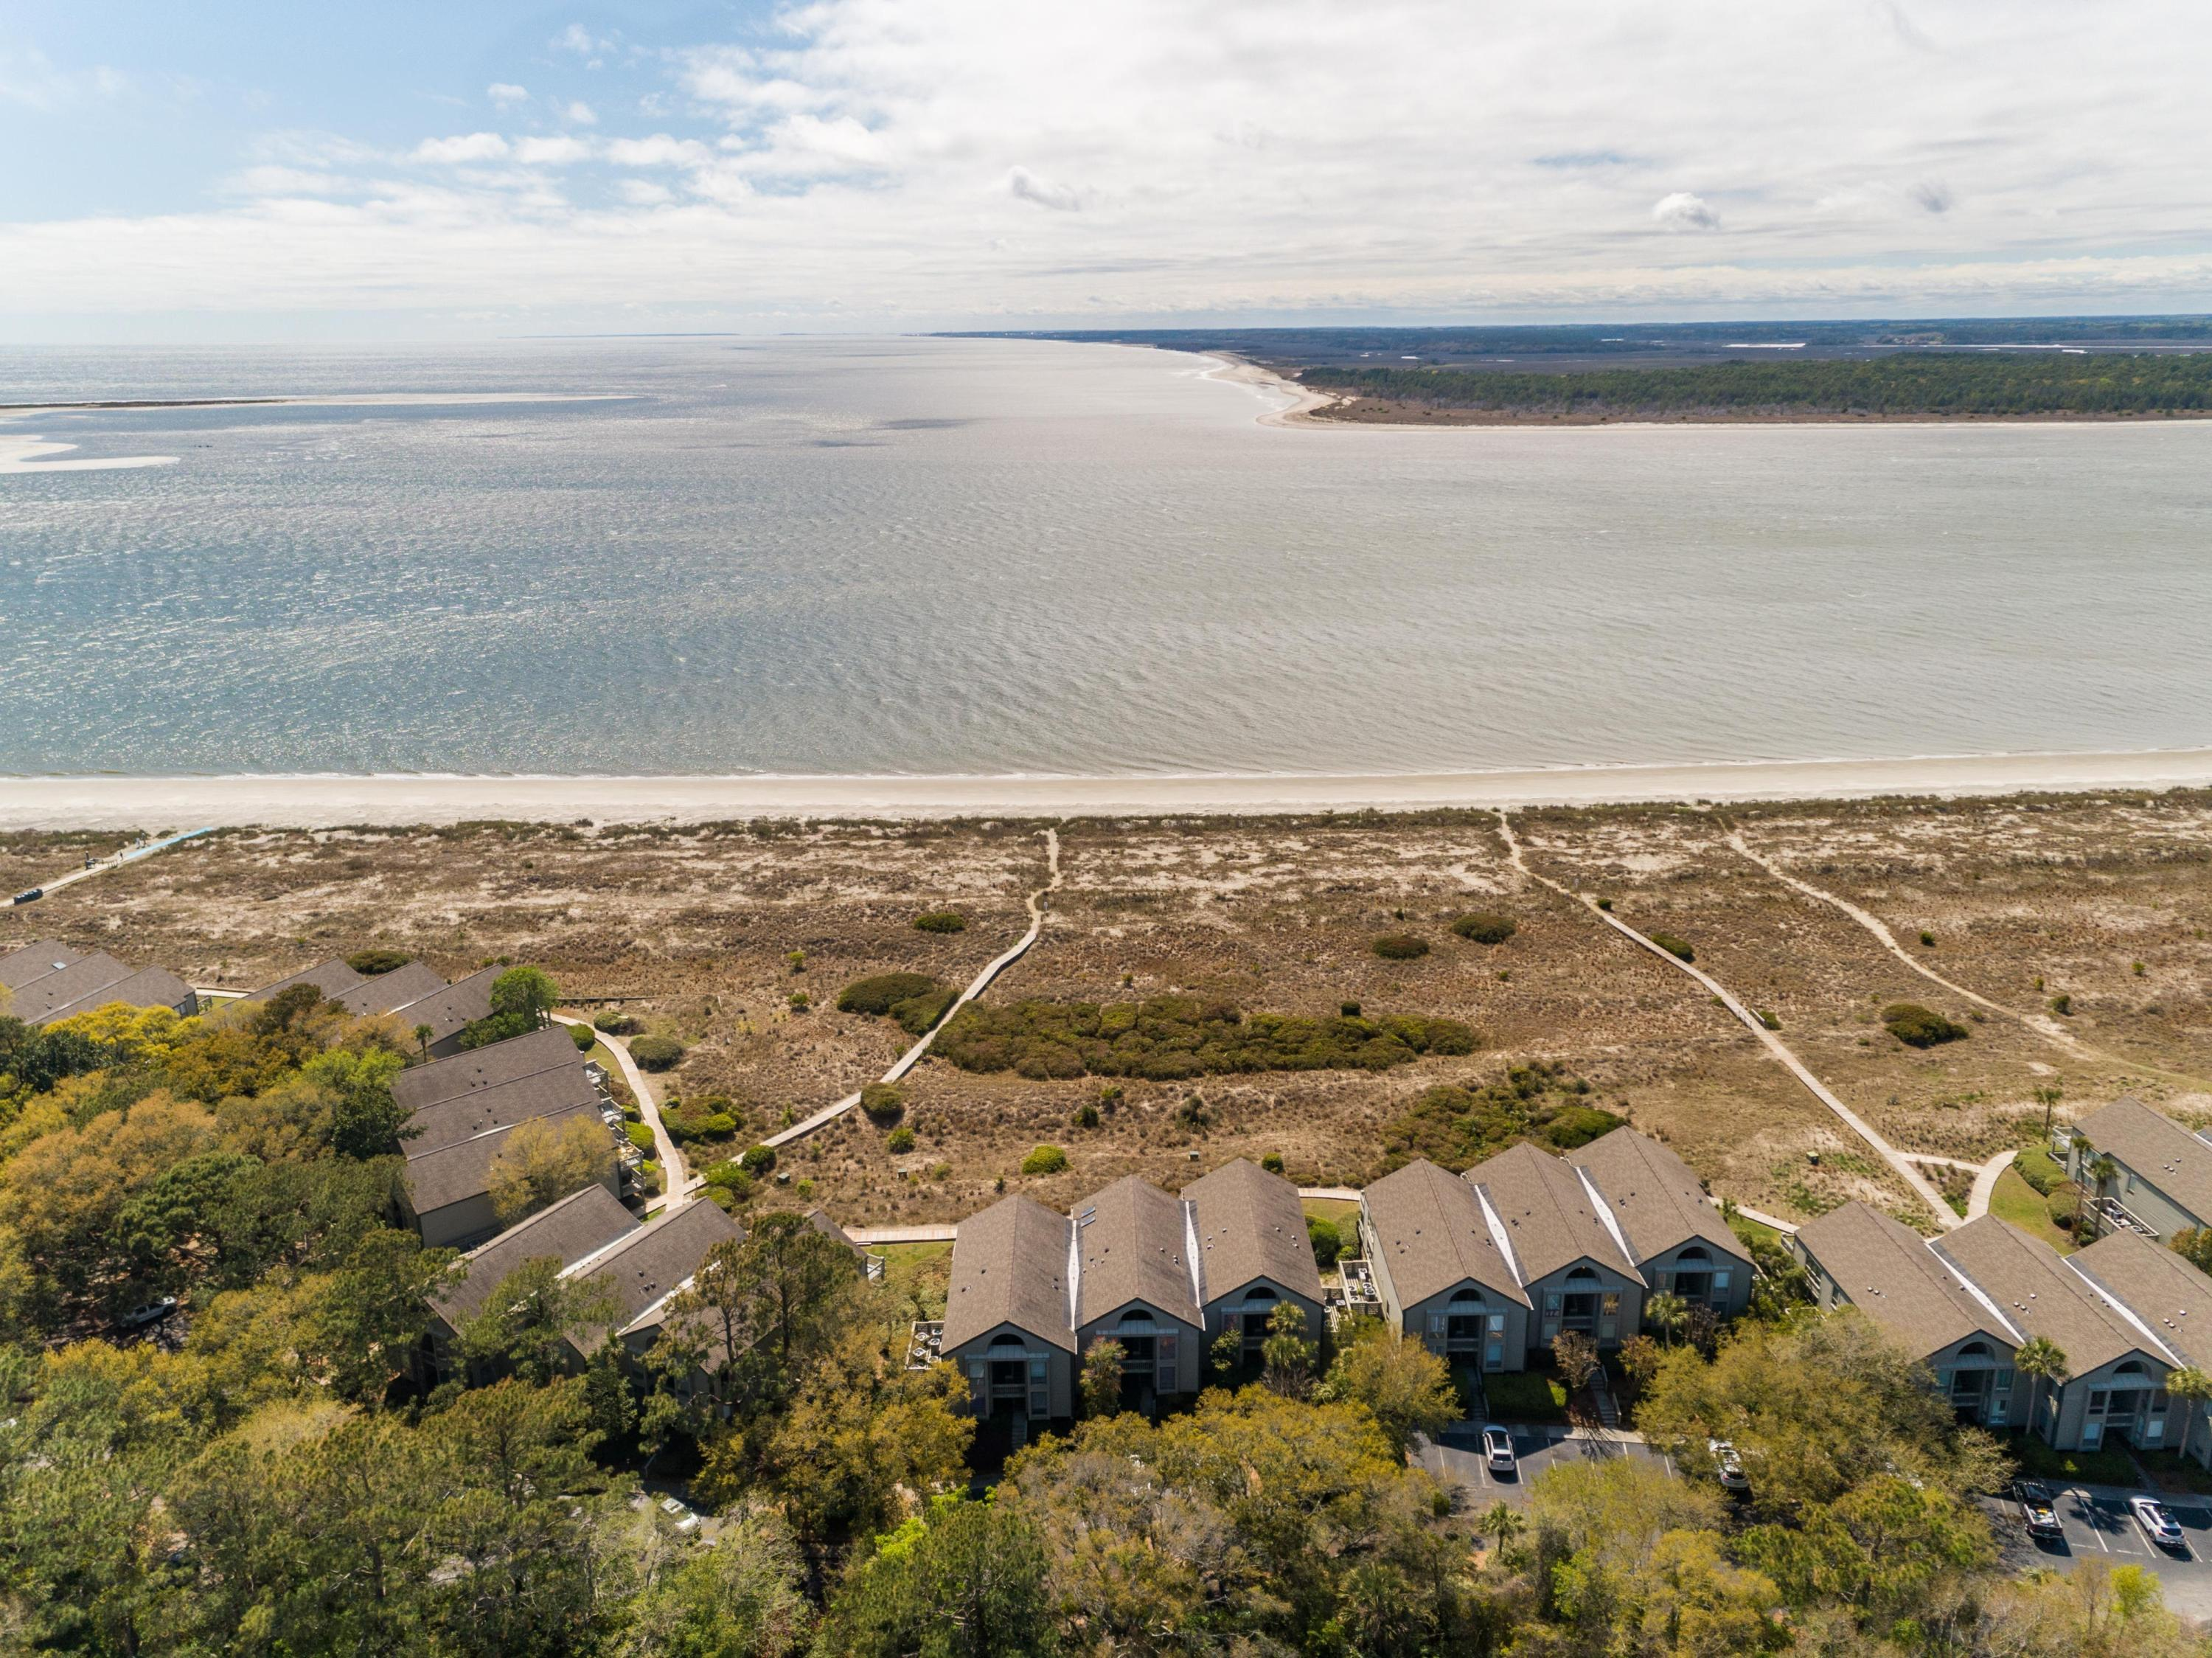 13101 Pelican Watch Villa Seabrook Island, SC 29455